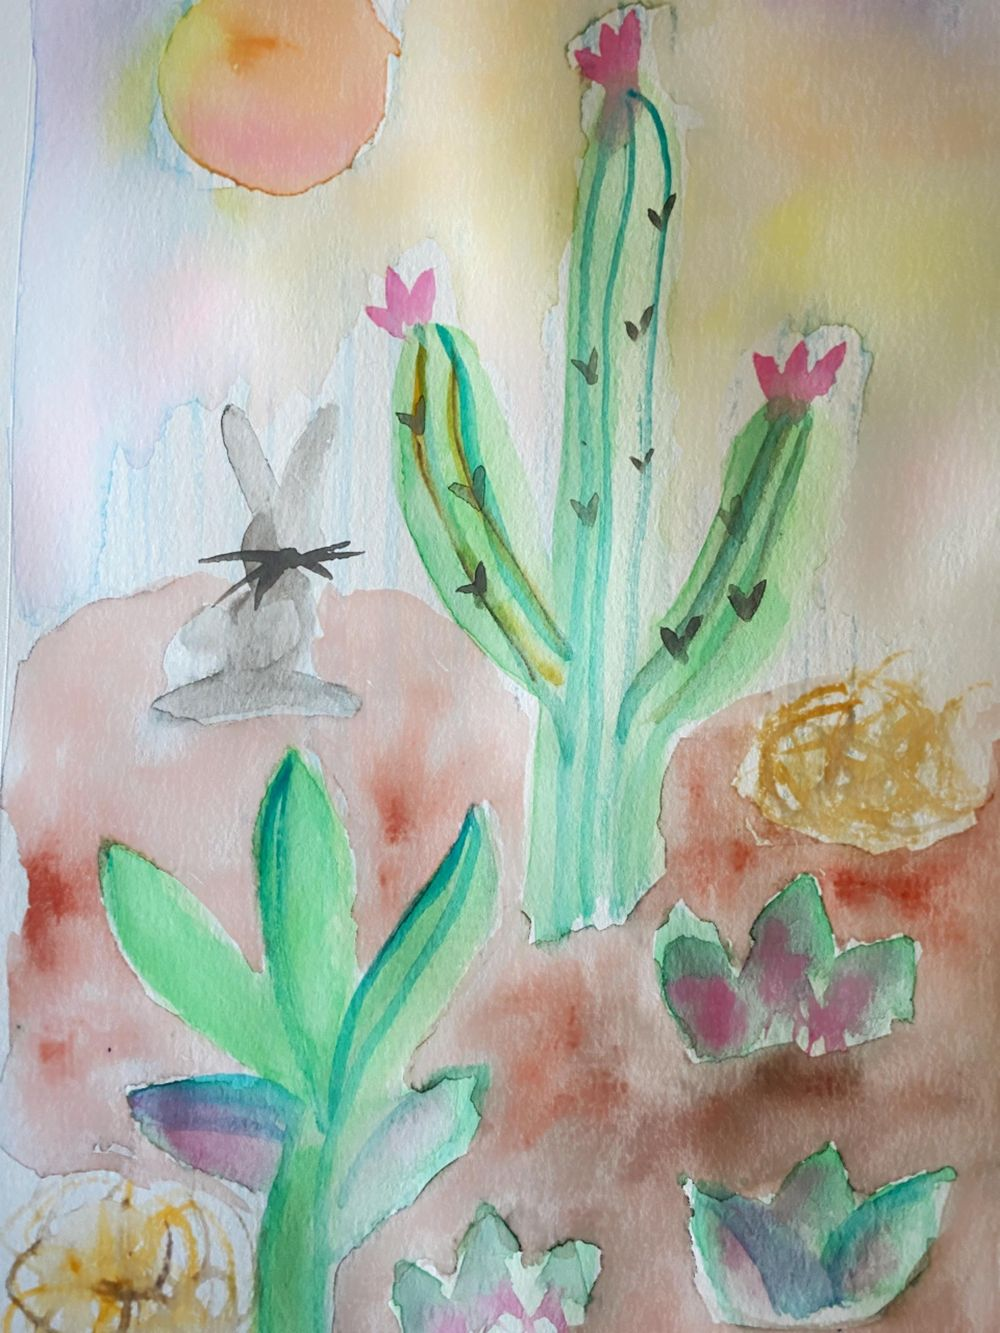 Watercolor Hypnobirthing Affirmations - image 4 - student project